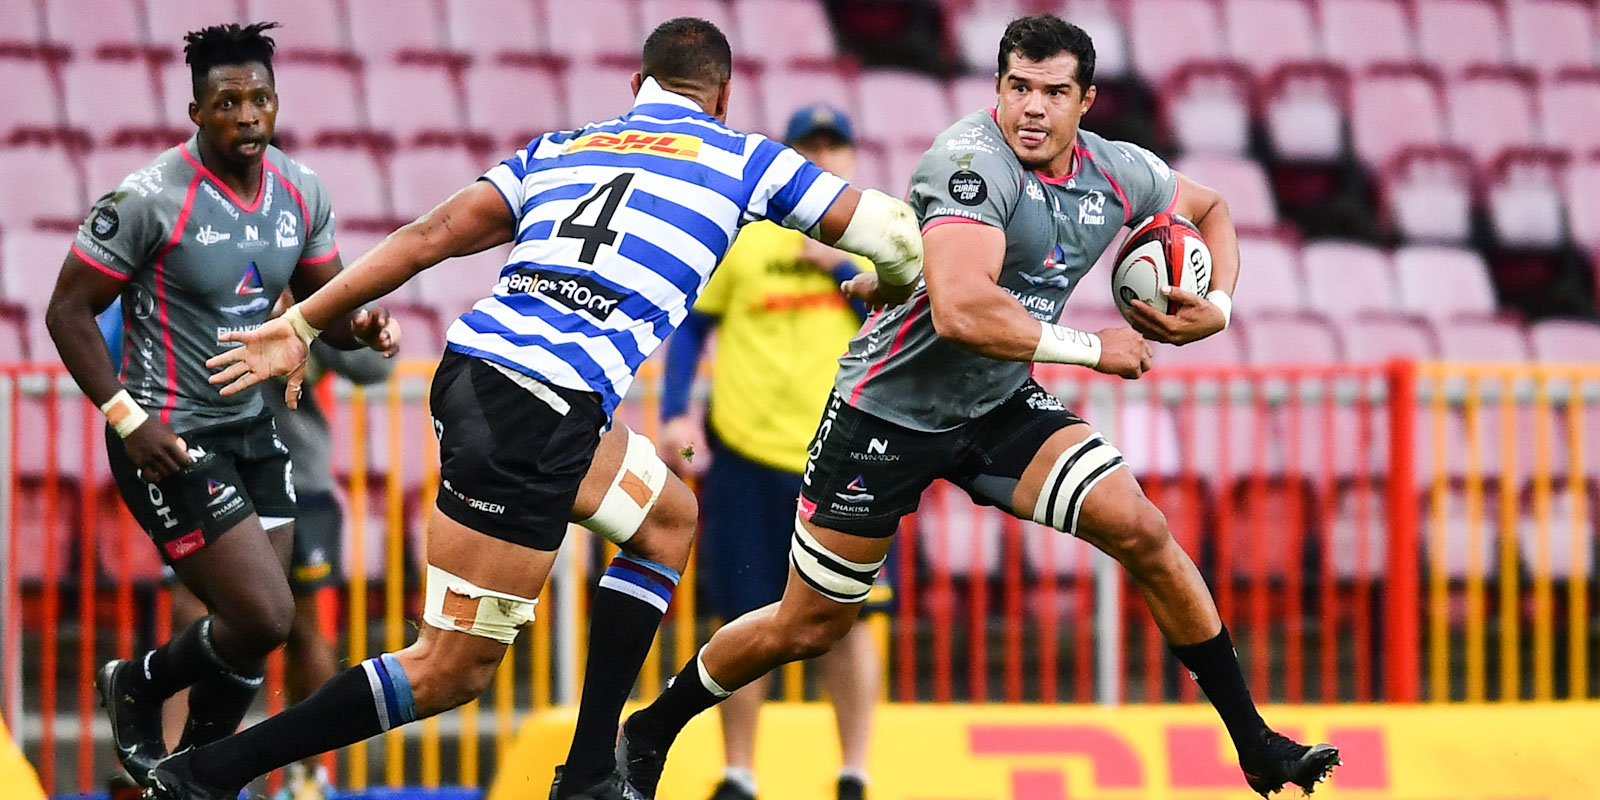 Willie Engelbrecht charging ahead for the Phakisa Pumas.